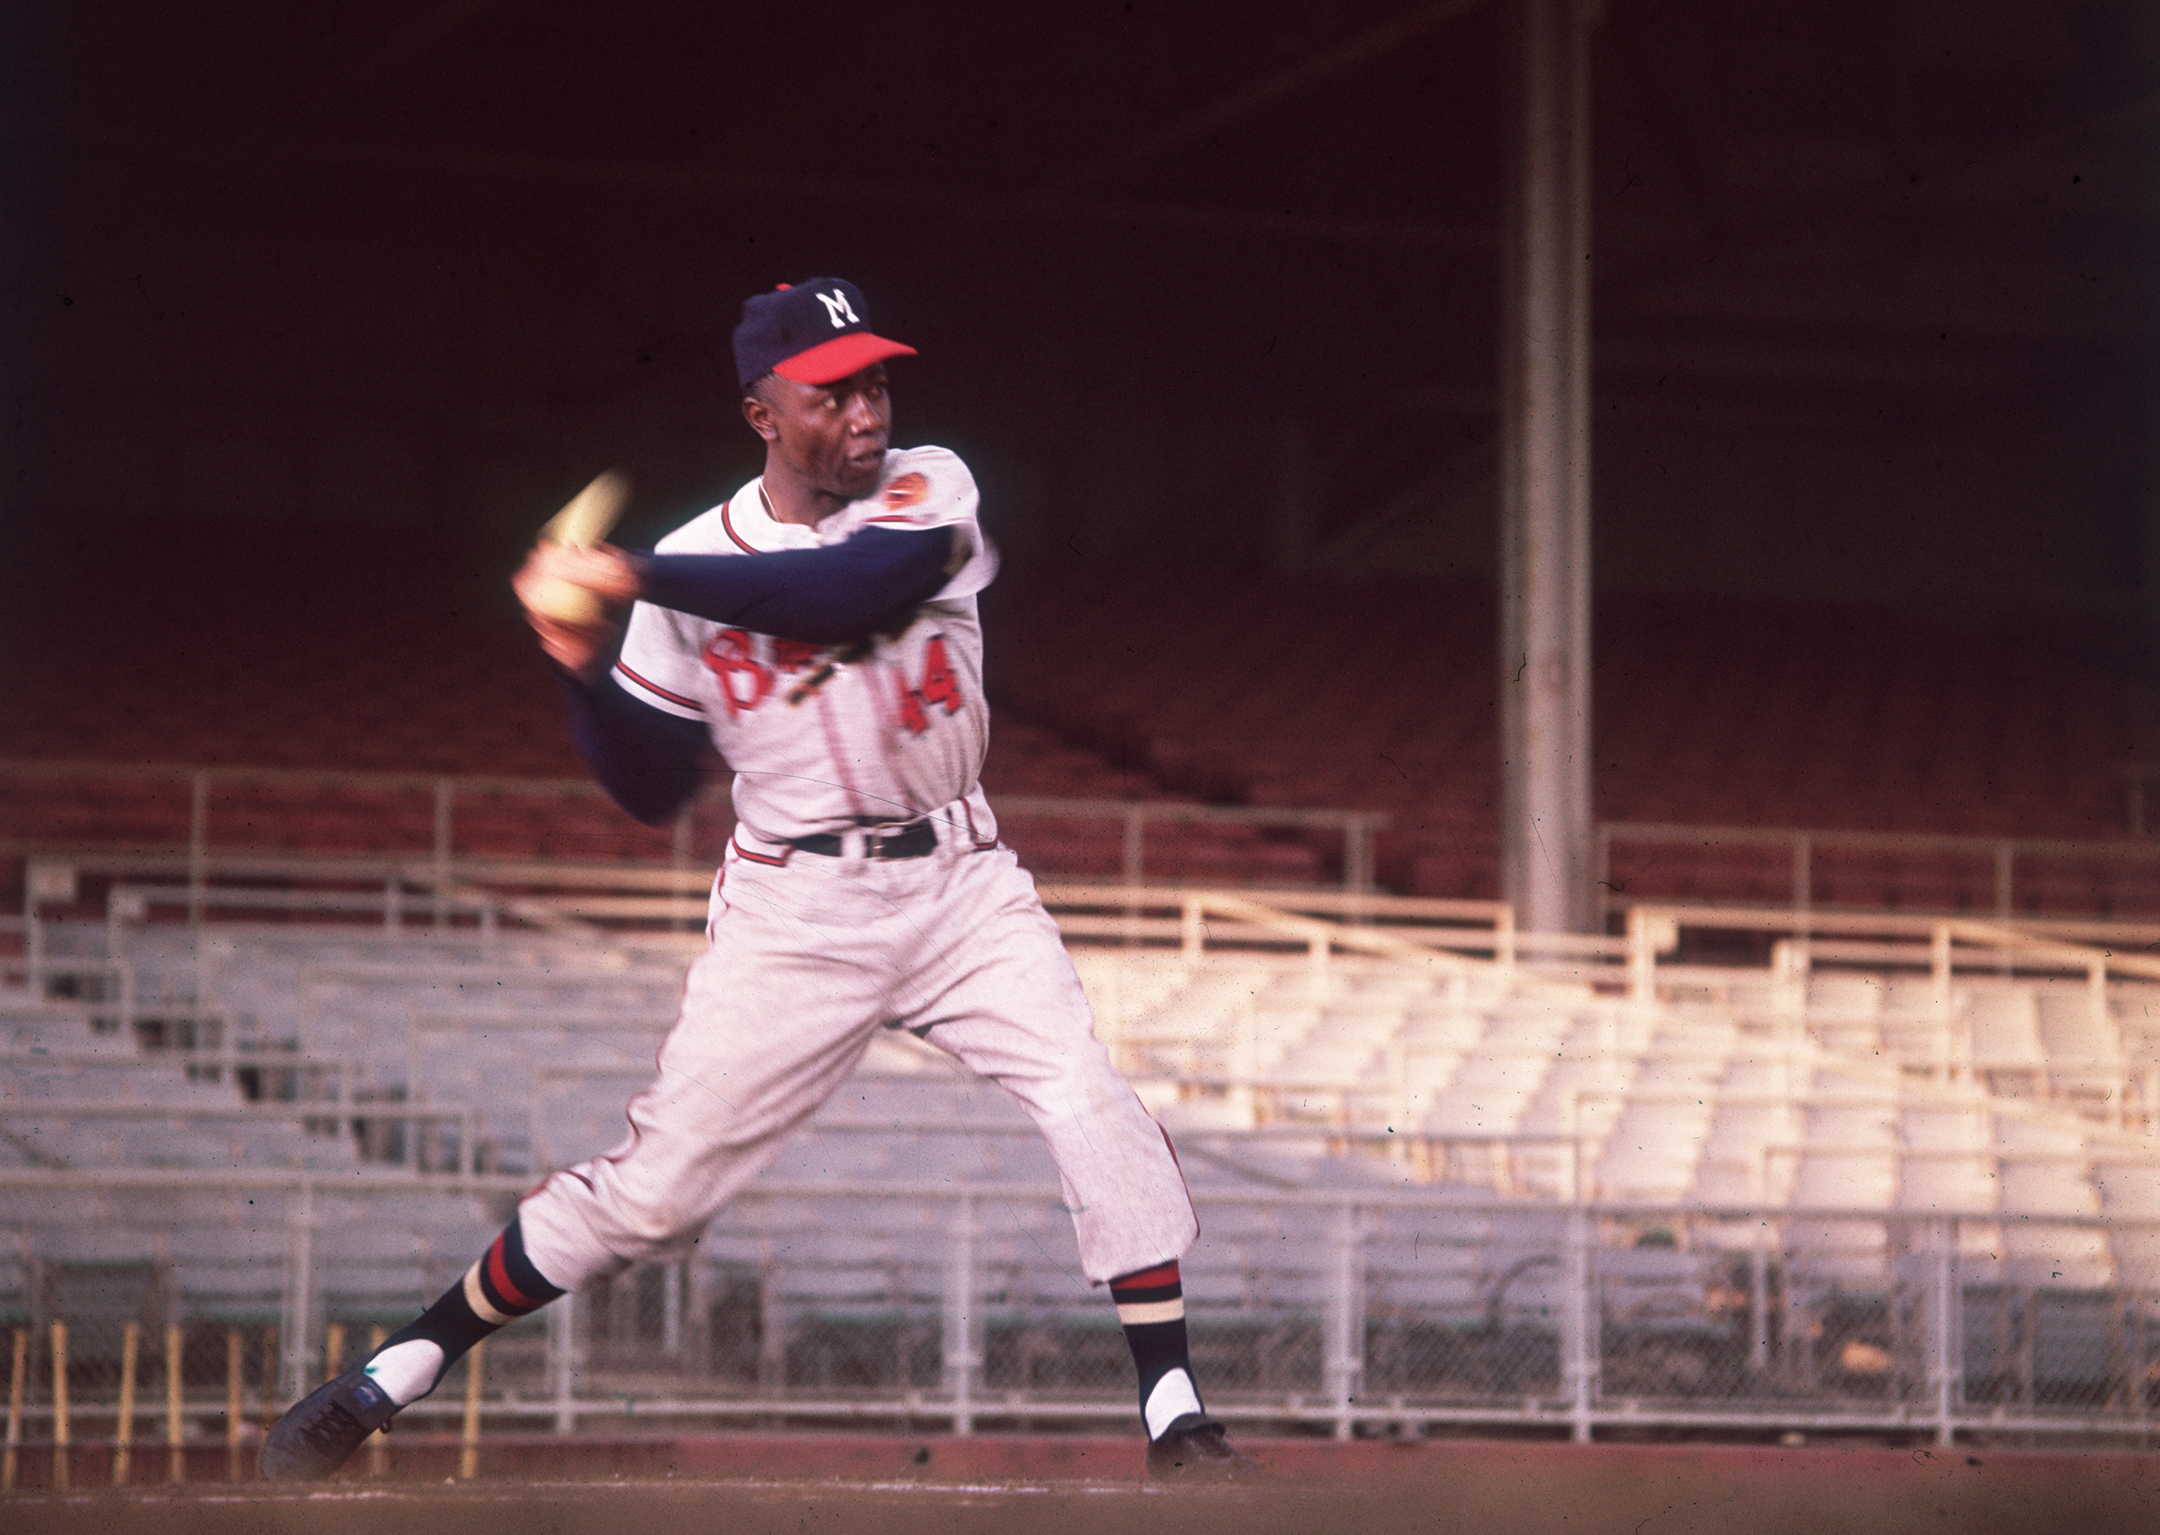 Color photo of professional baseball player Henry Aaron in the middle of swinging his bat in an empty stadium